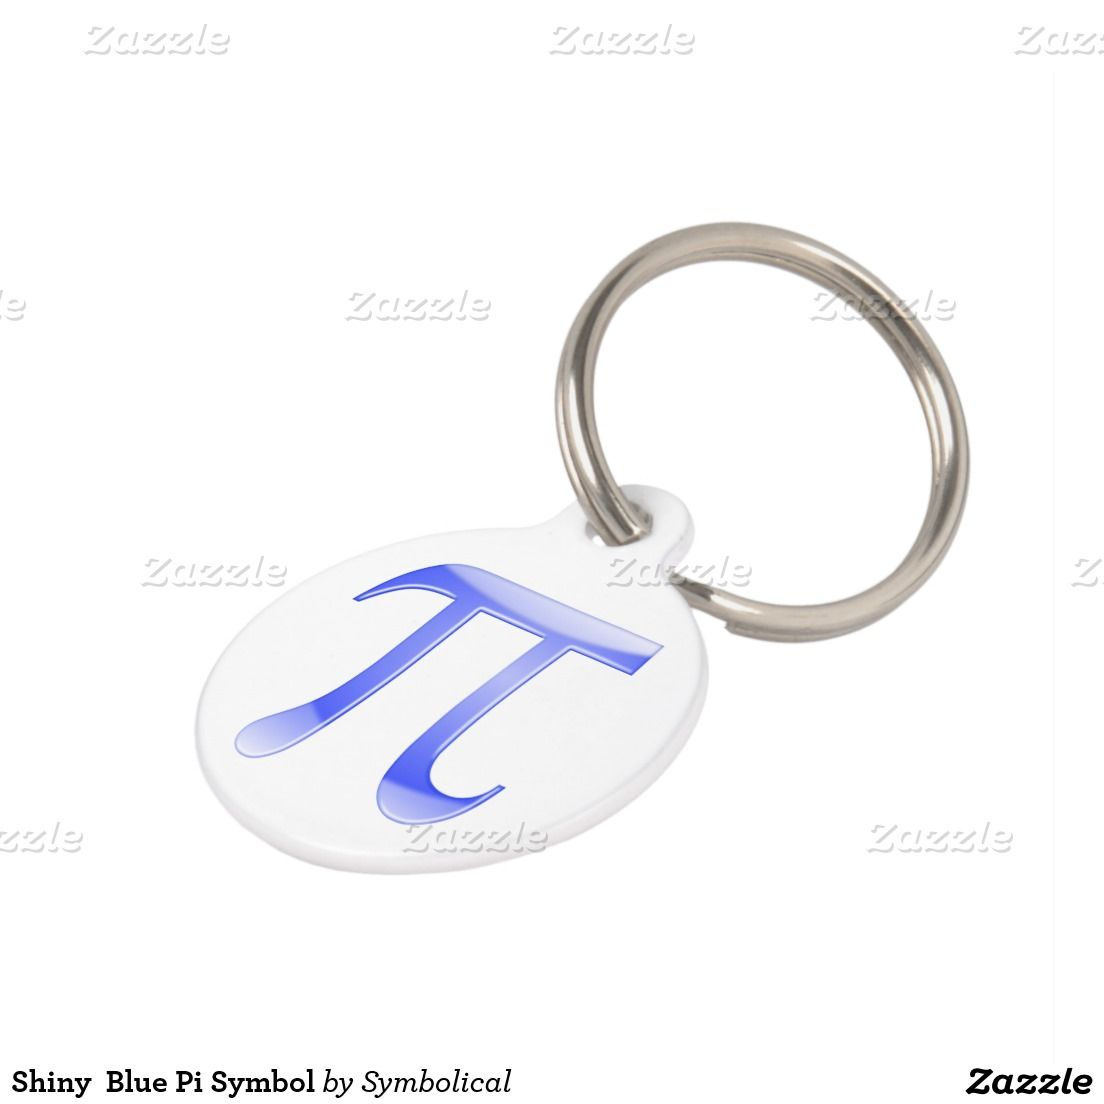 Shiny silver pi symbol photo charms by symbolical gravityx9 shiny silver pi symbol photo charms by symbolical gravityx9 zazzle gravityx9 at zazzle pinterest pi symbol photo charms and symbols biocorpaavc Image collections